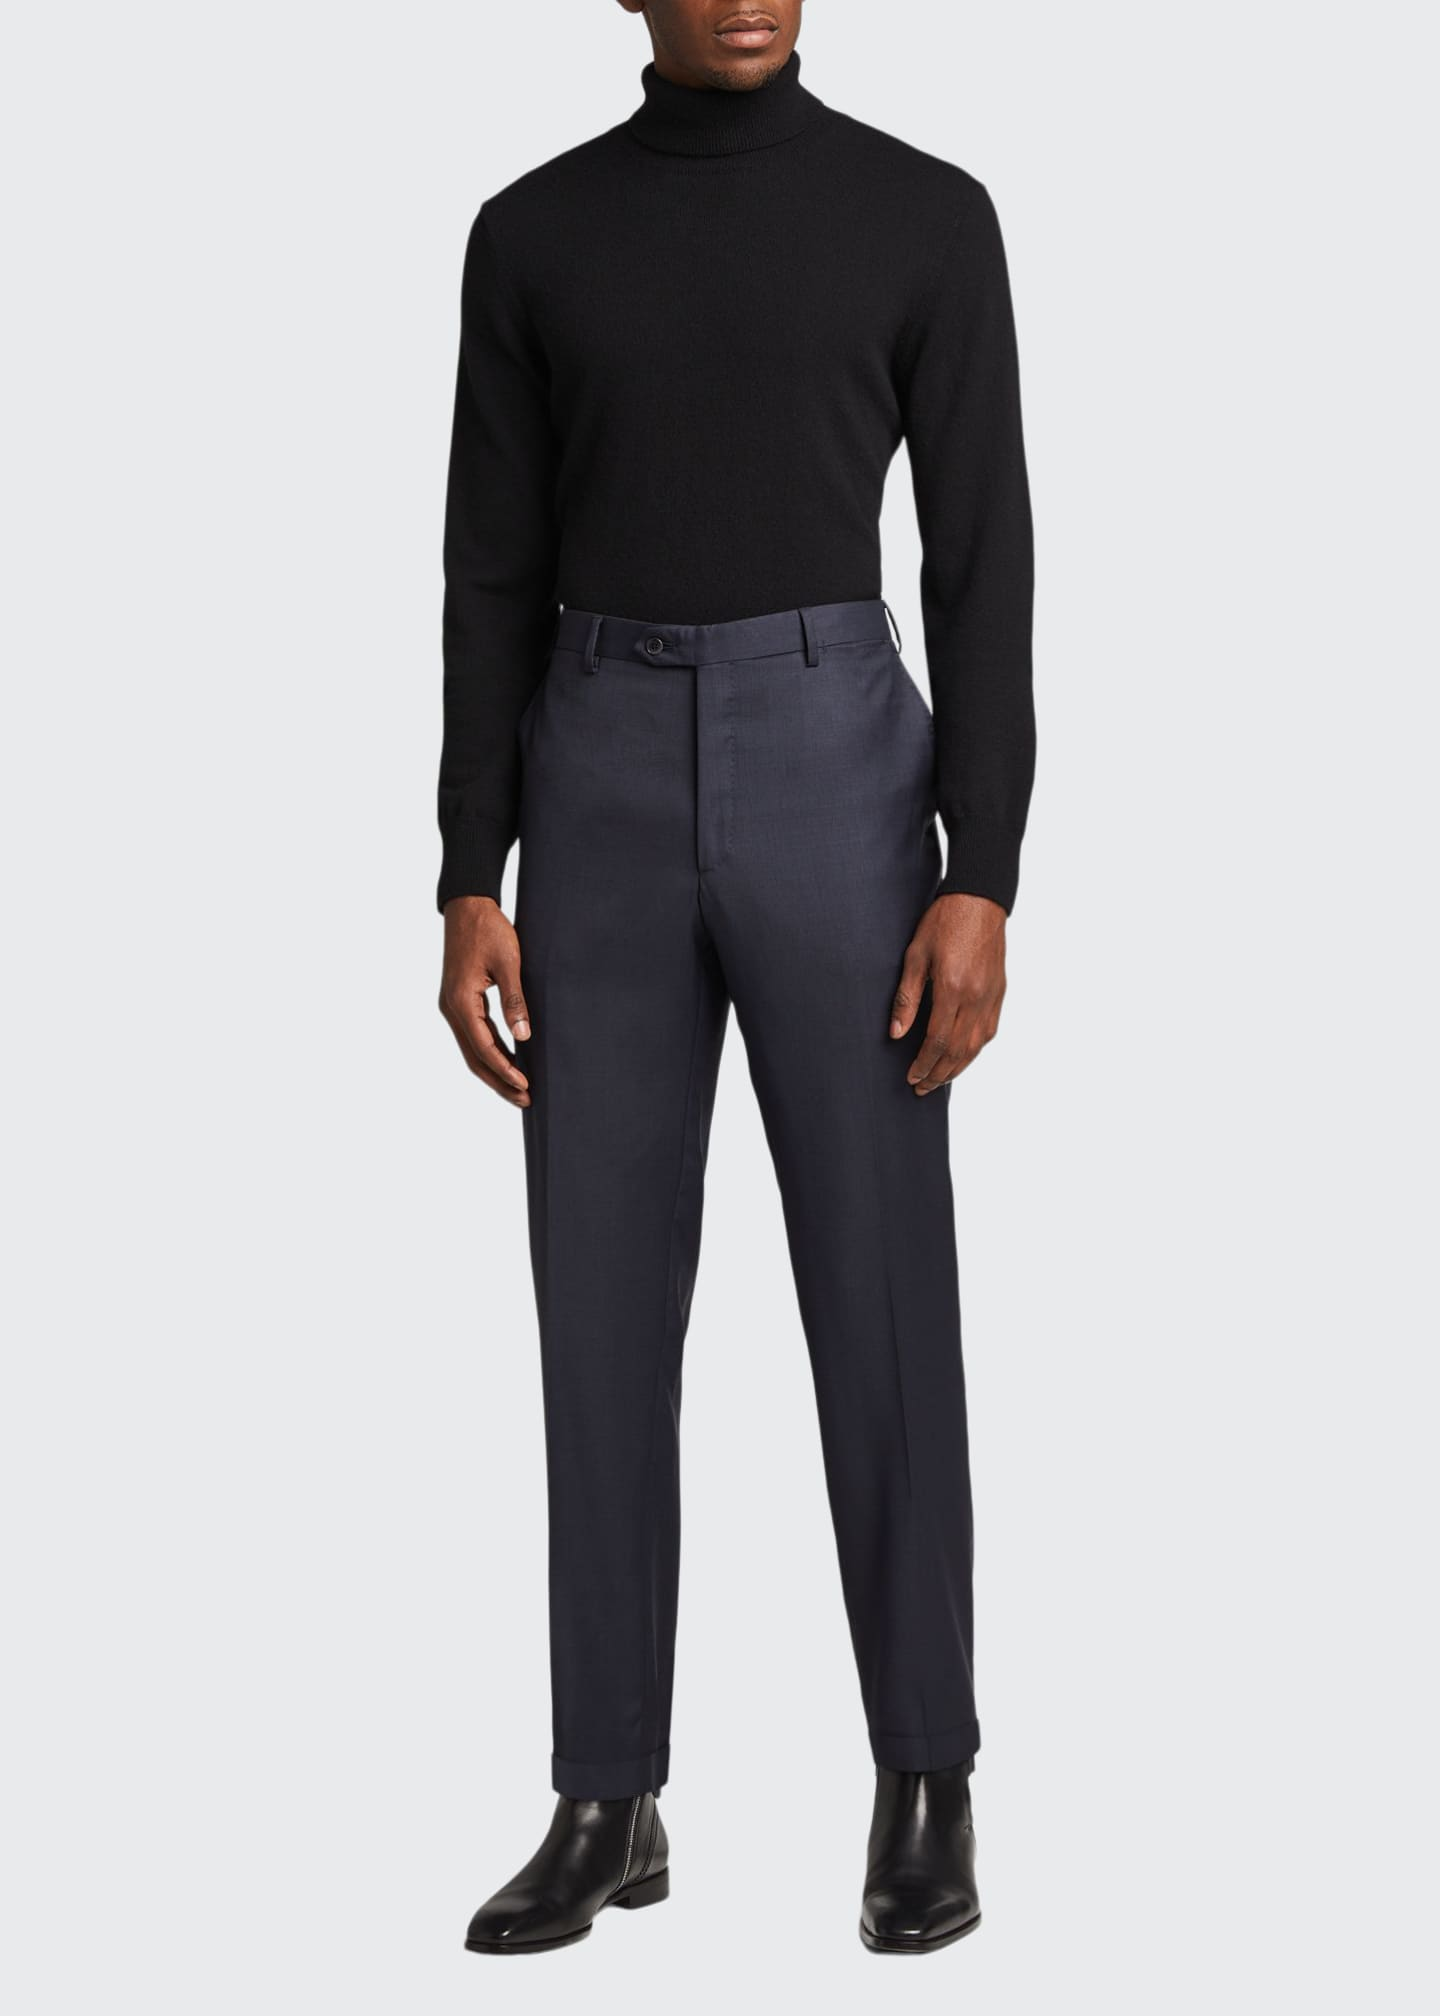 Image 1 of 5: Men's Tigulli Solid Wool Trousers